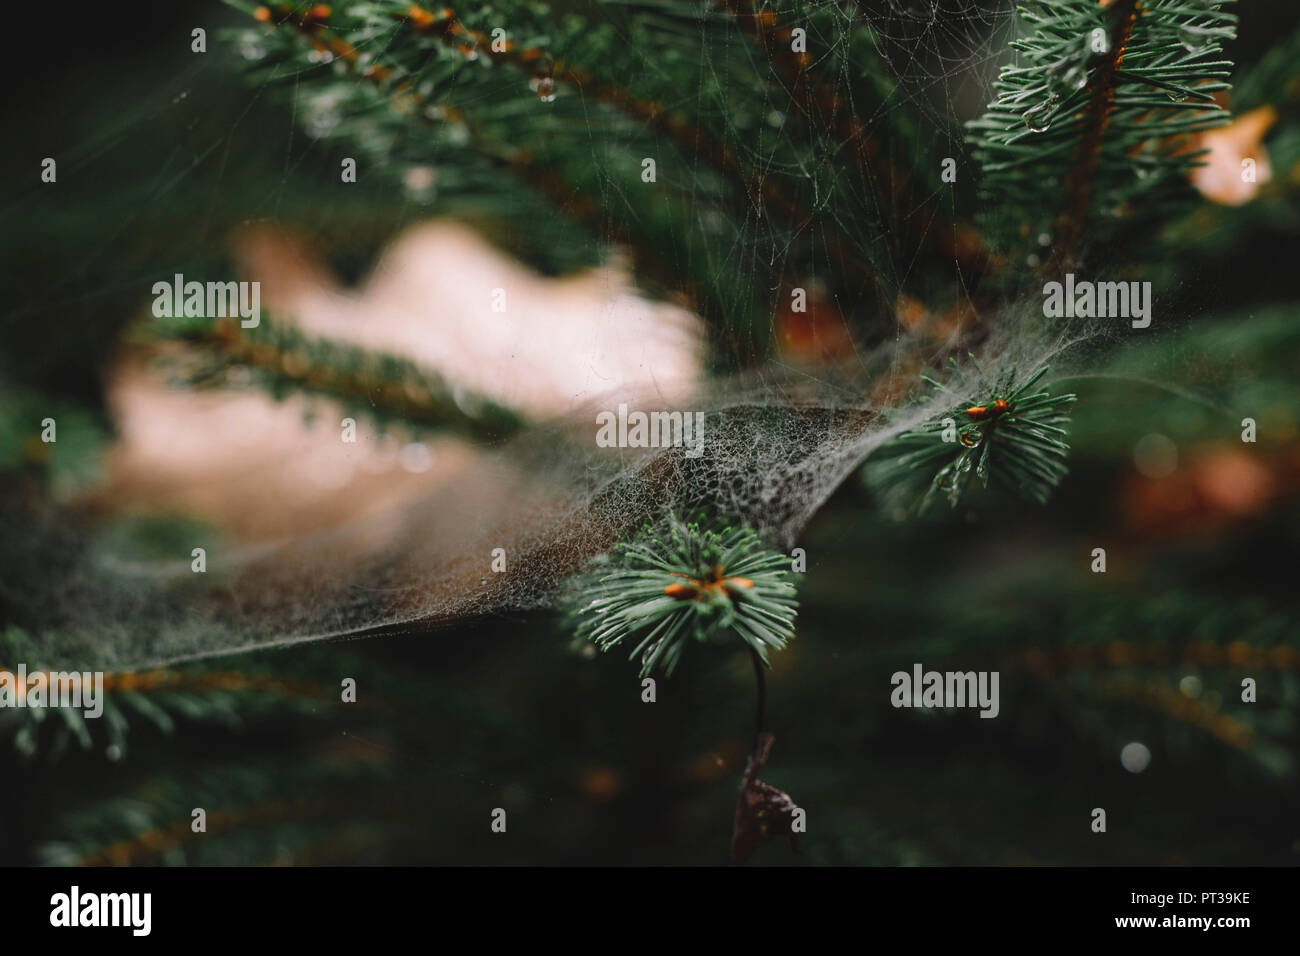 Teutoburg Forest in autumn, spider web at conifer - Stock Image